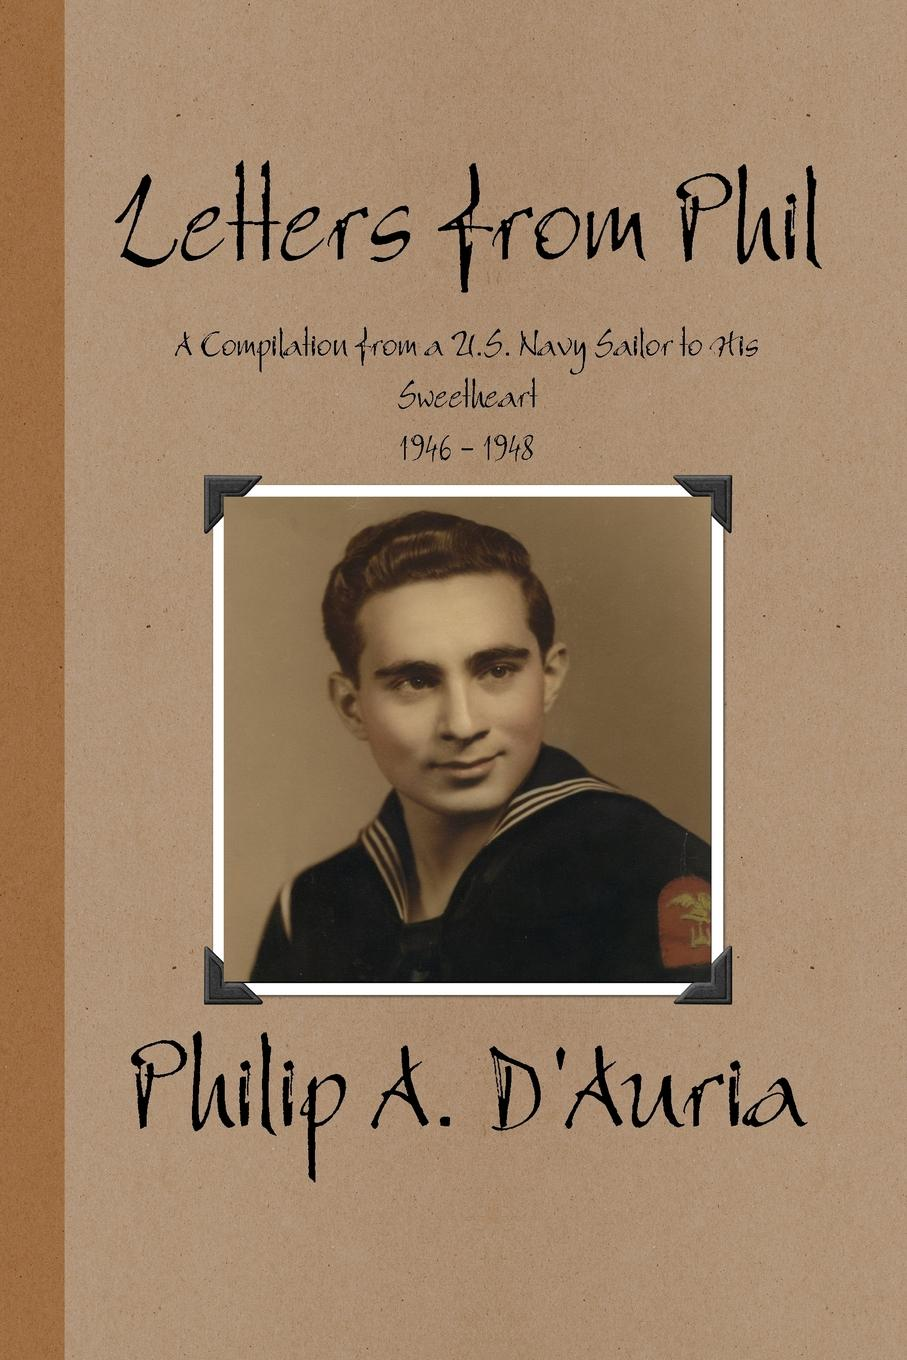 Фото - Philip A. D'Auria Letters from Phil - A Compilation from a U.S. Navy Sailor to His Sweetheart, 1946 - 1948 love letters from ladybug farm